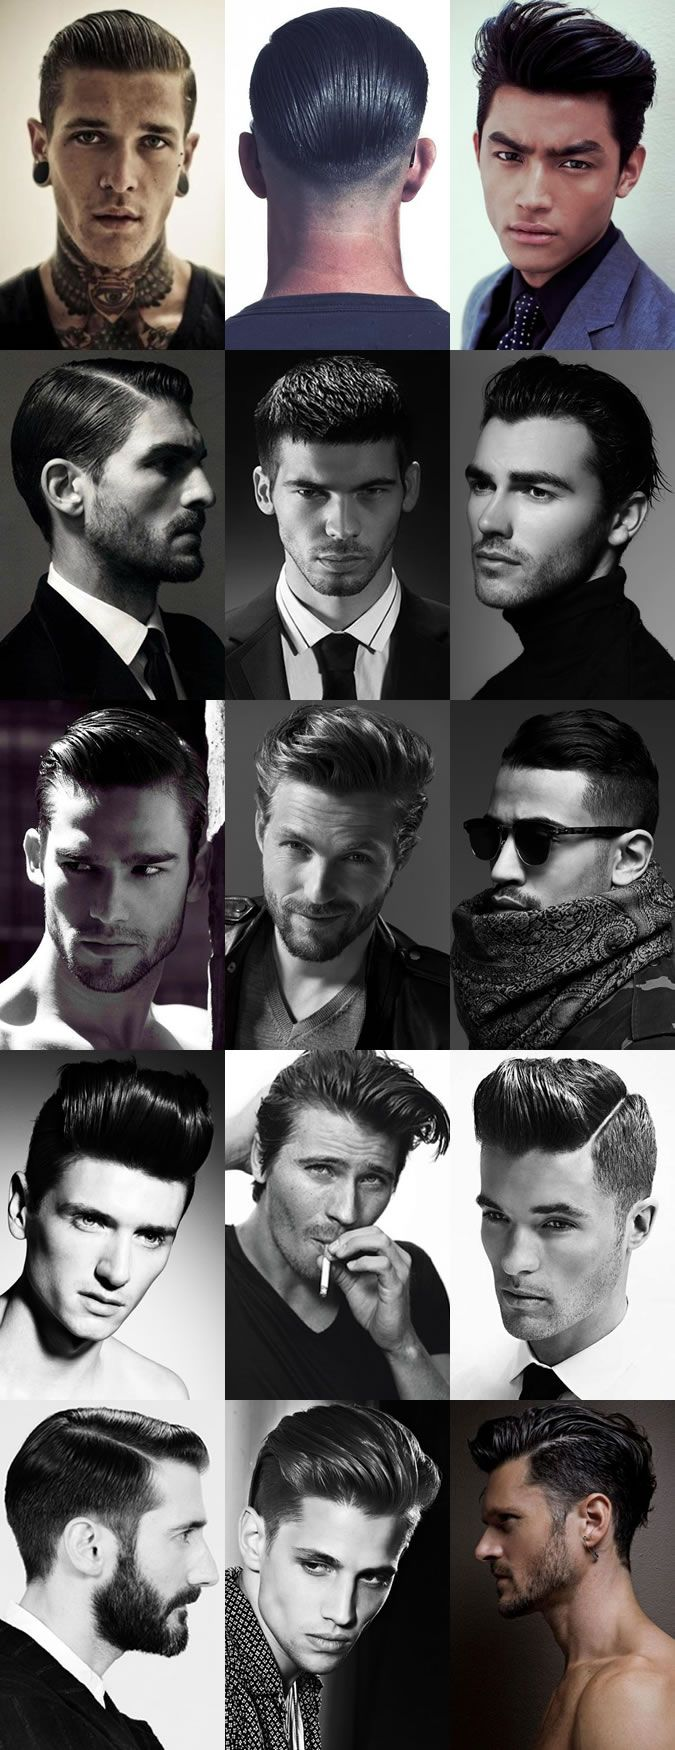 Men's Sheen, High Shine and Wet Look Hairstyles...